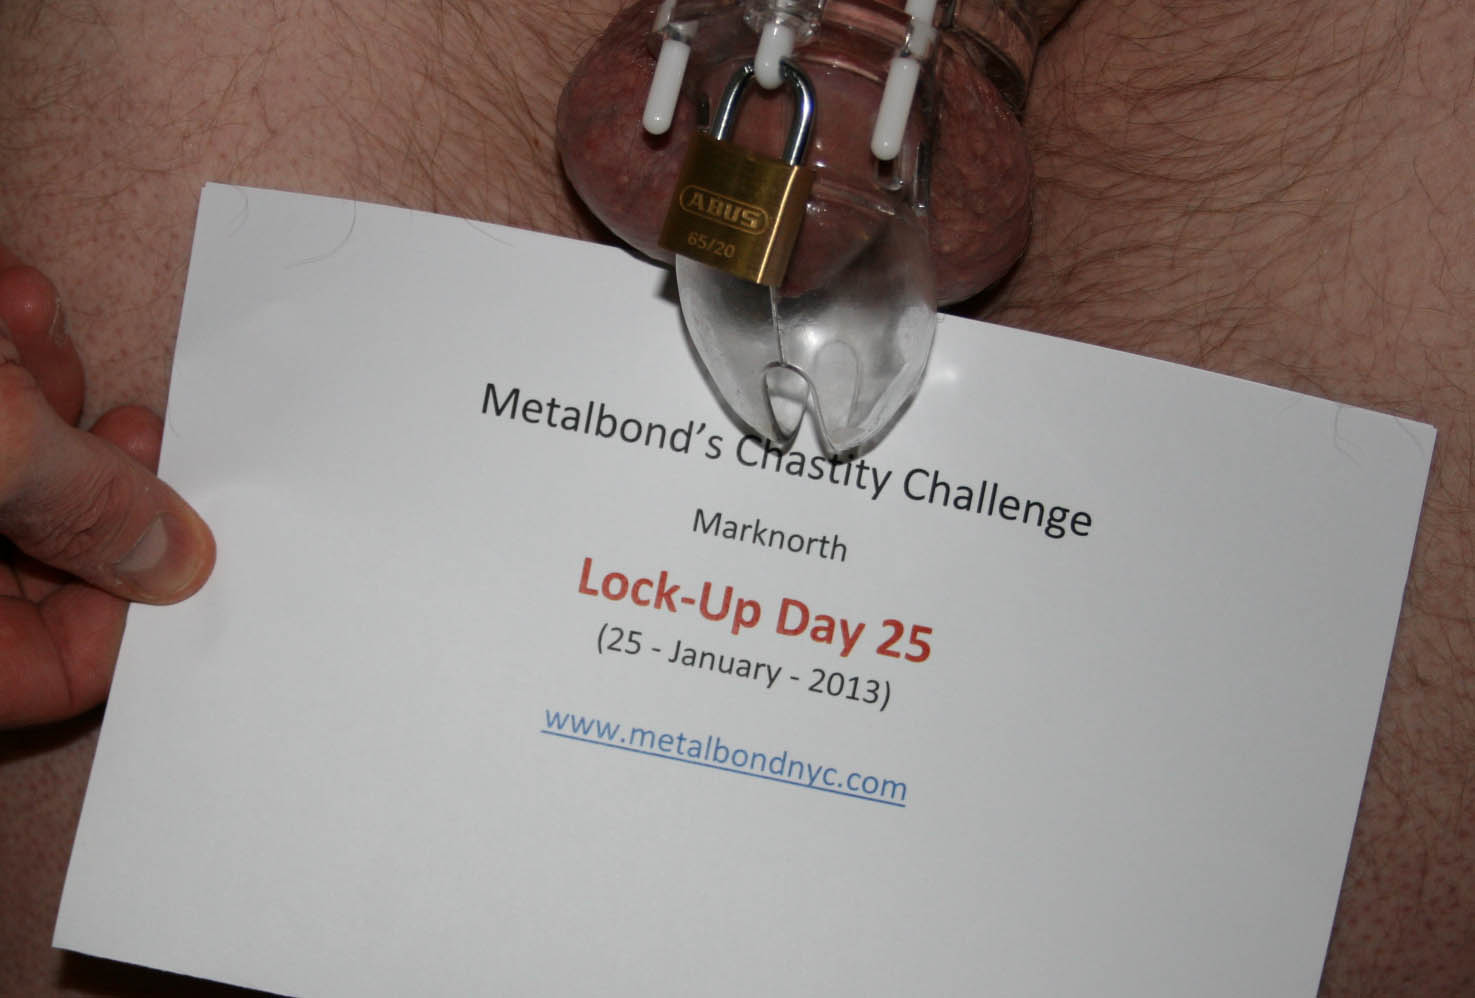 Marknorth locked in chastity